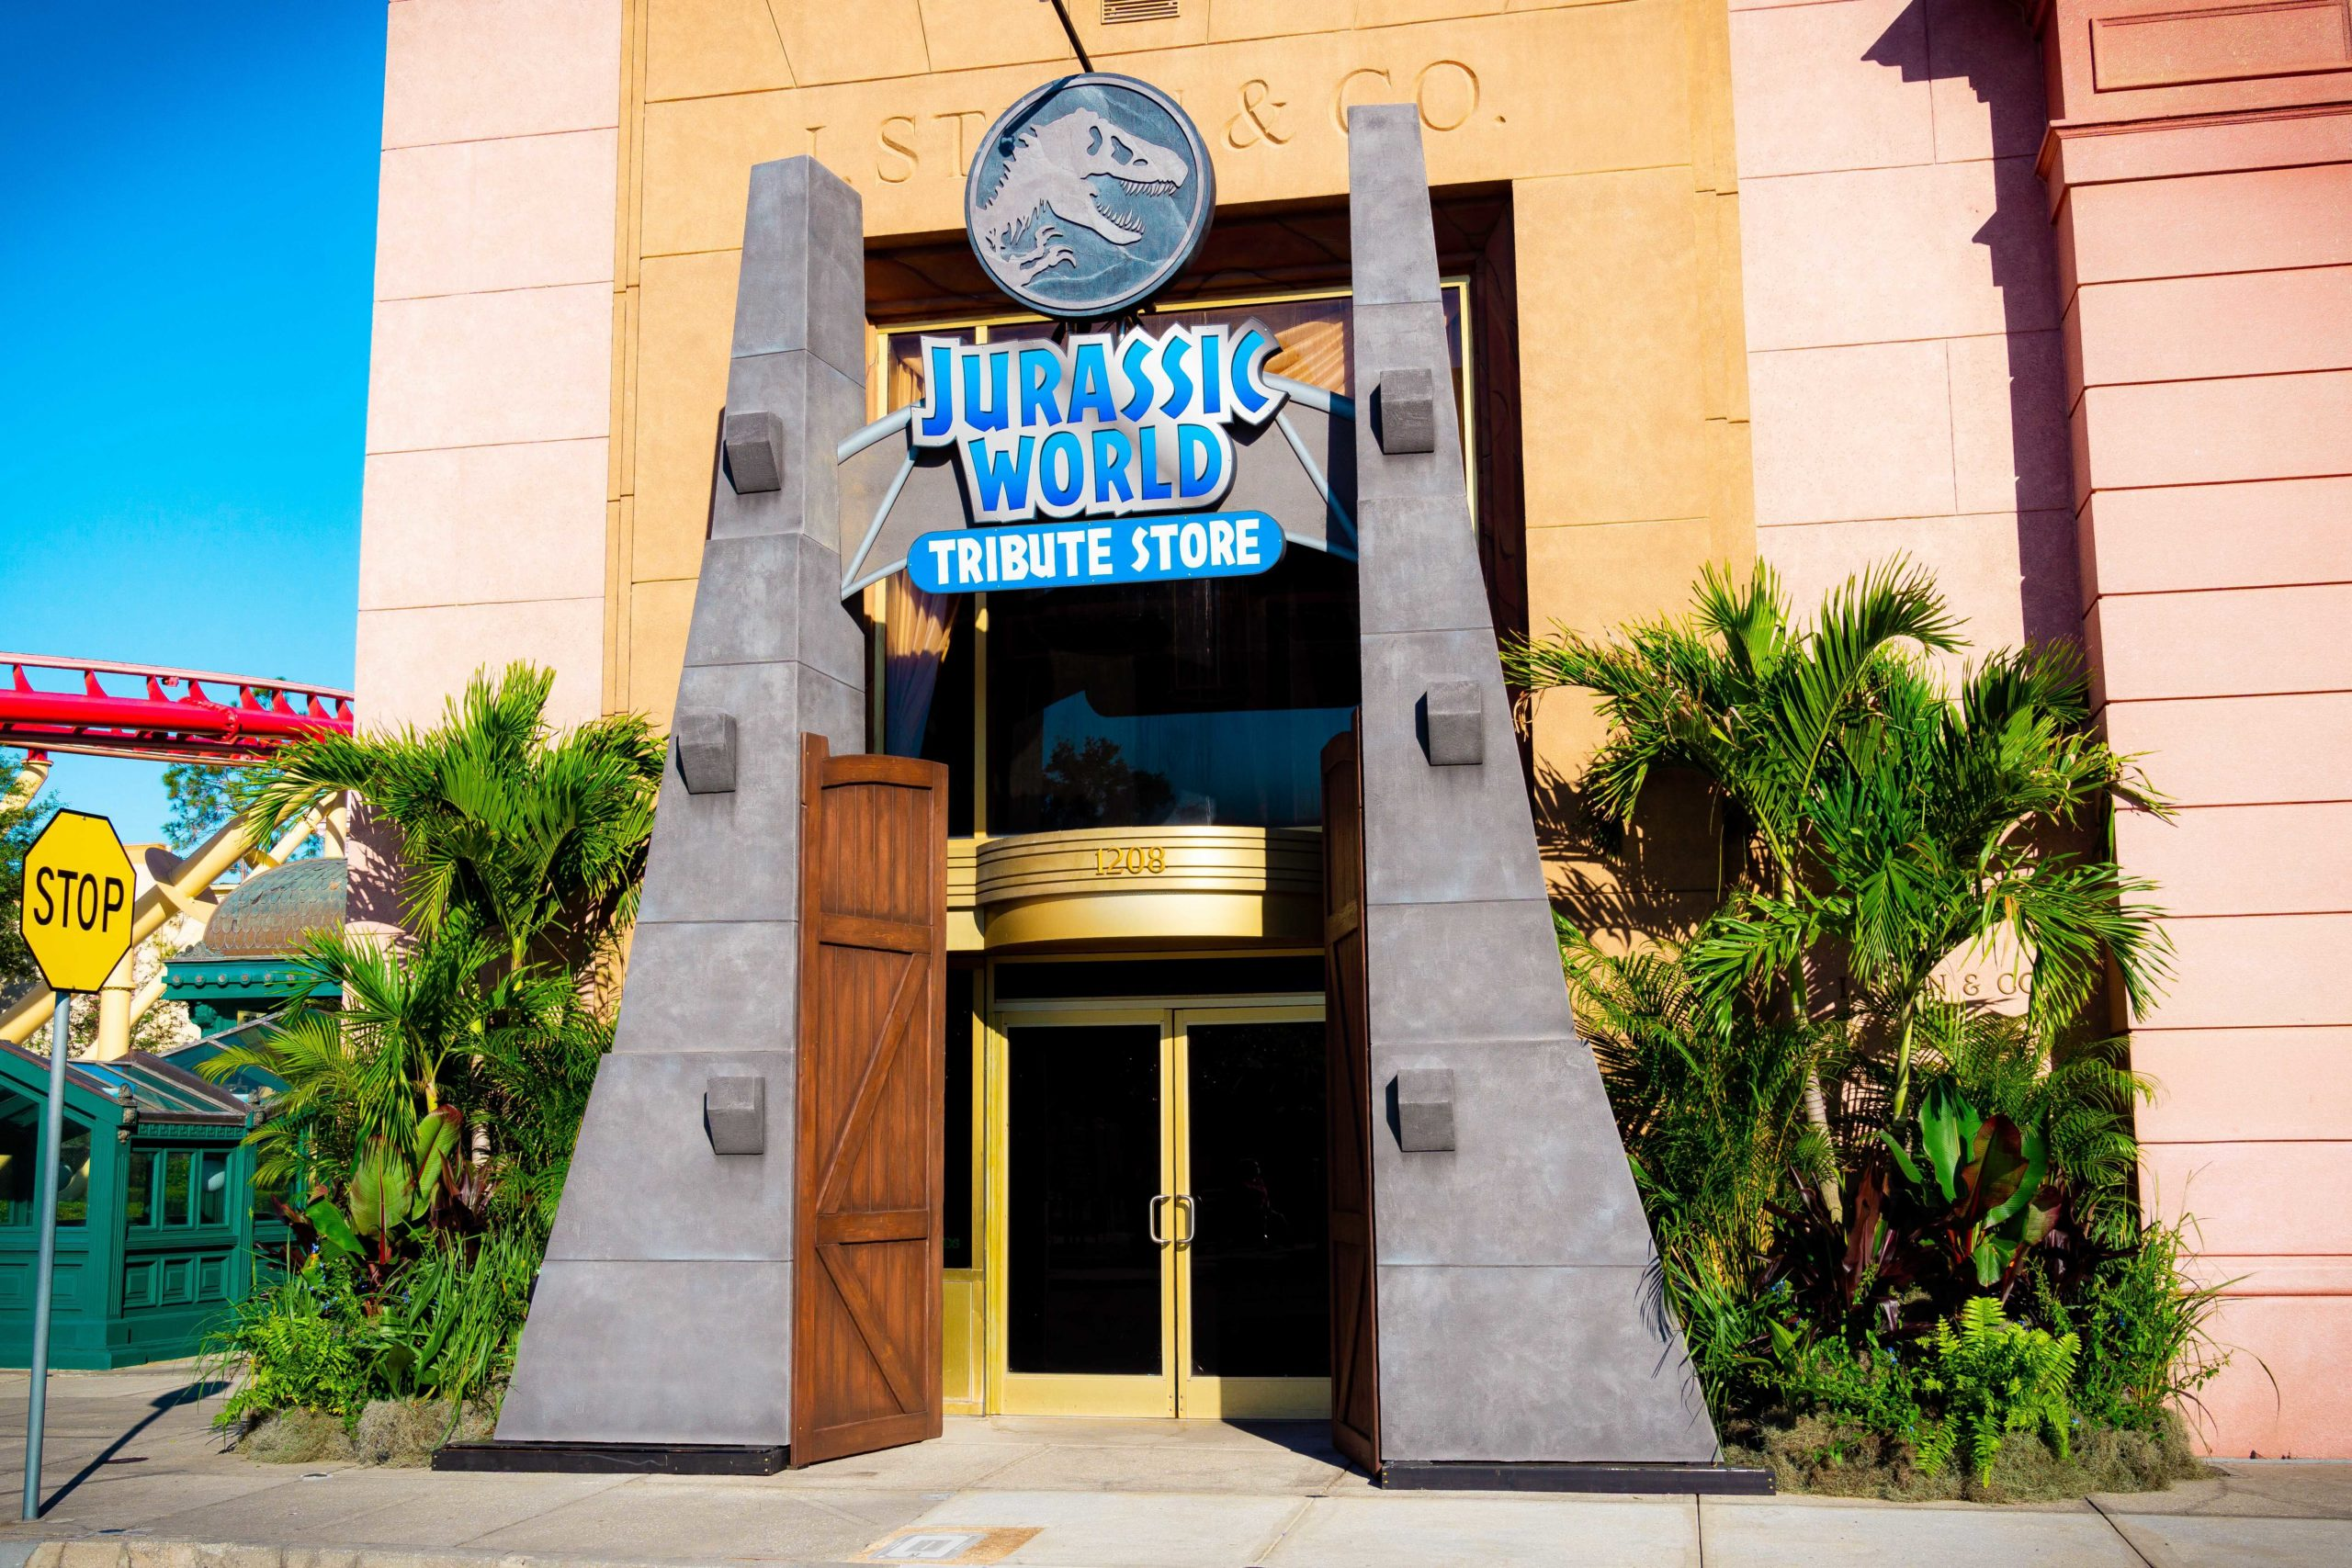 Jurassic World Tribute Store at Universal Studios Florida